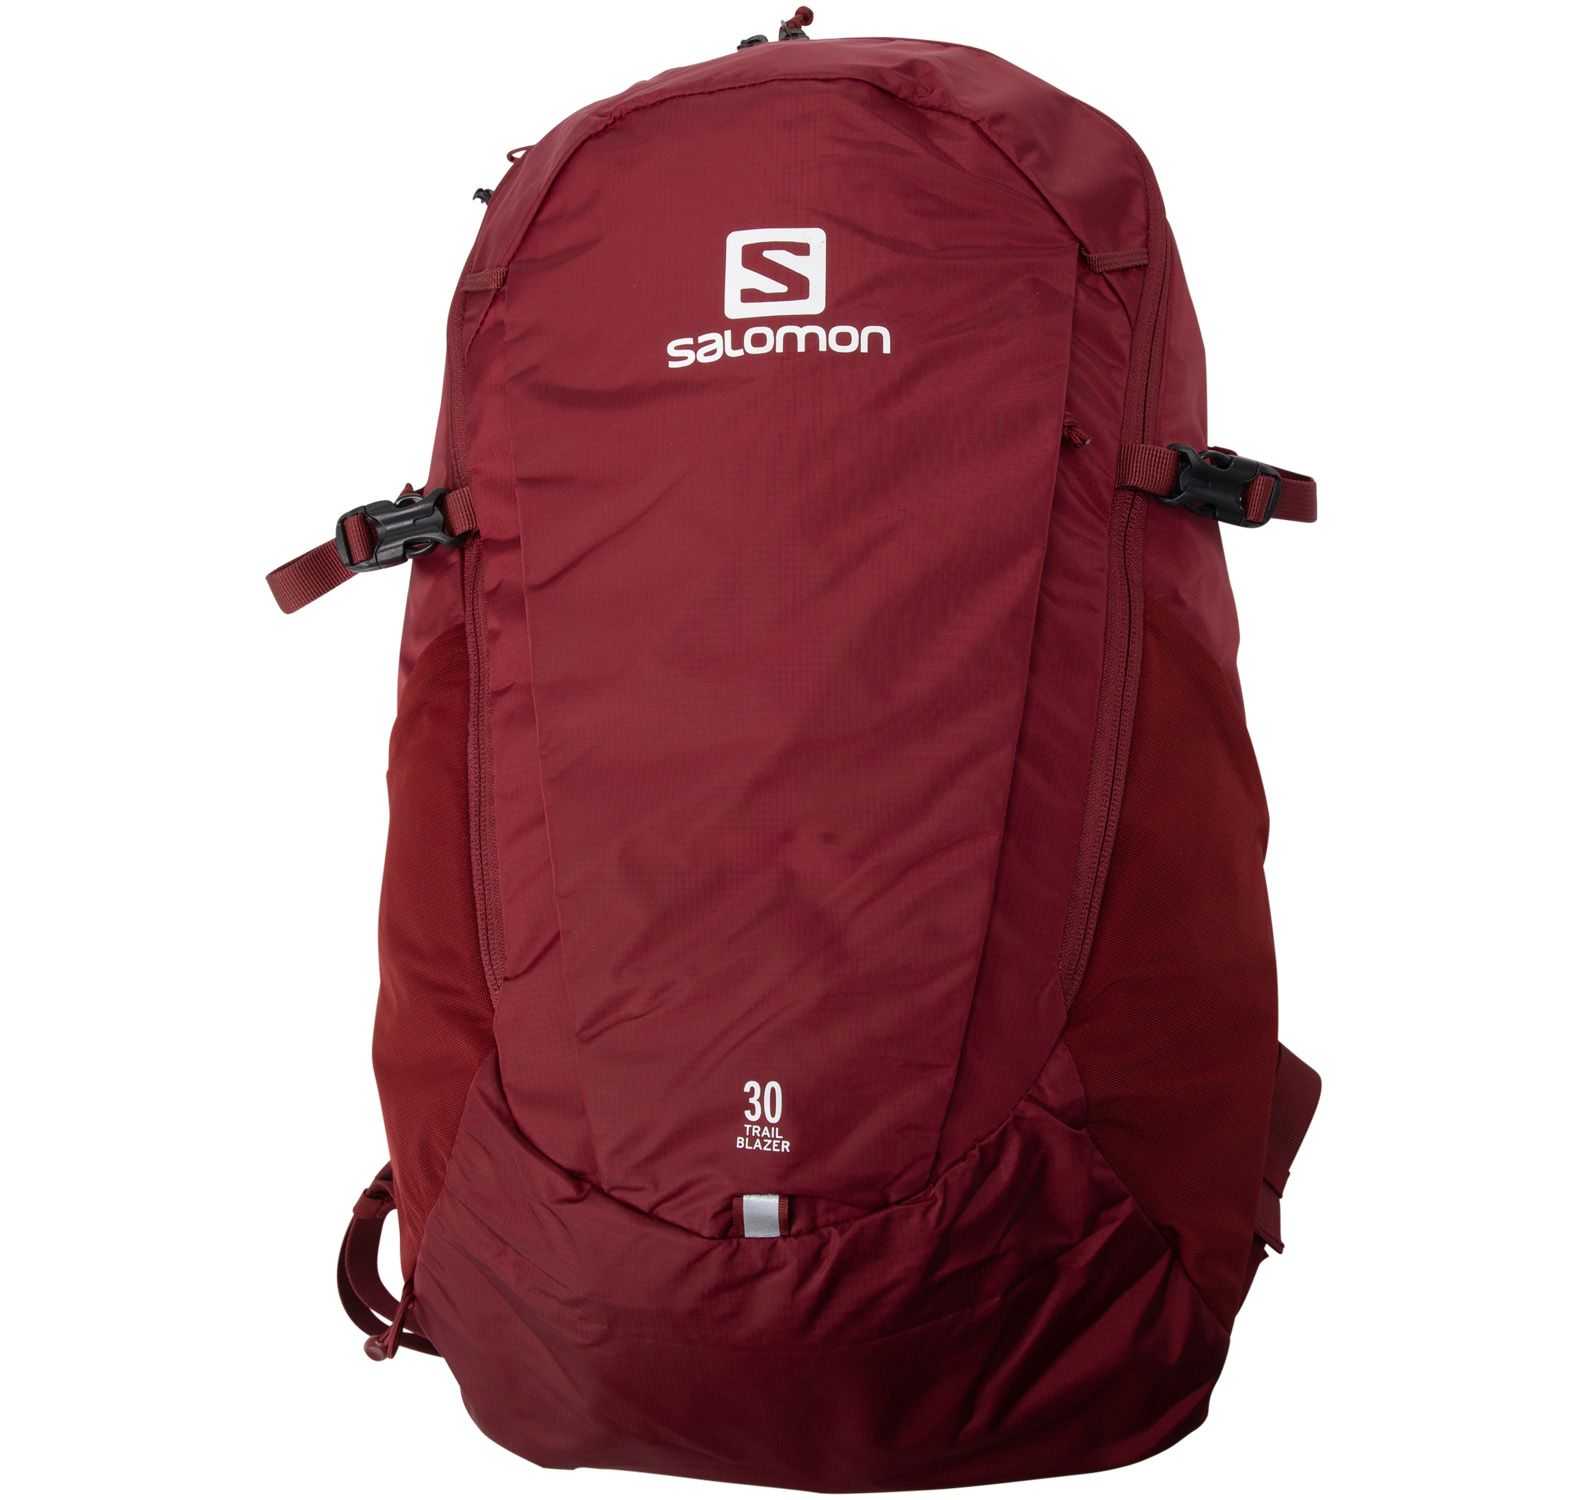 trailblazer 30, red, no size, salomon – salomon